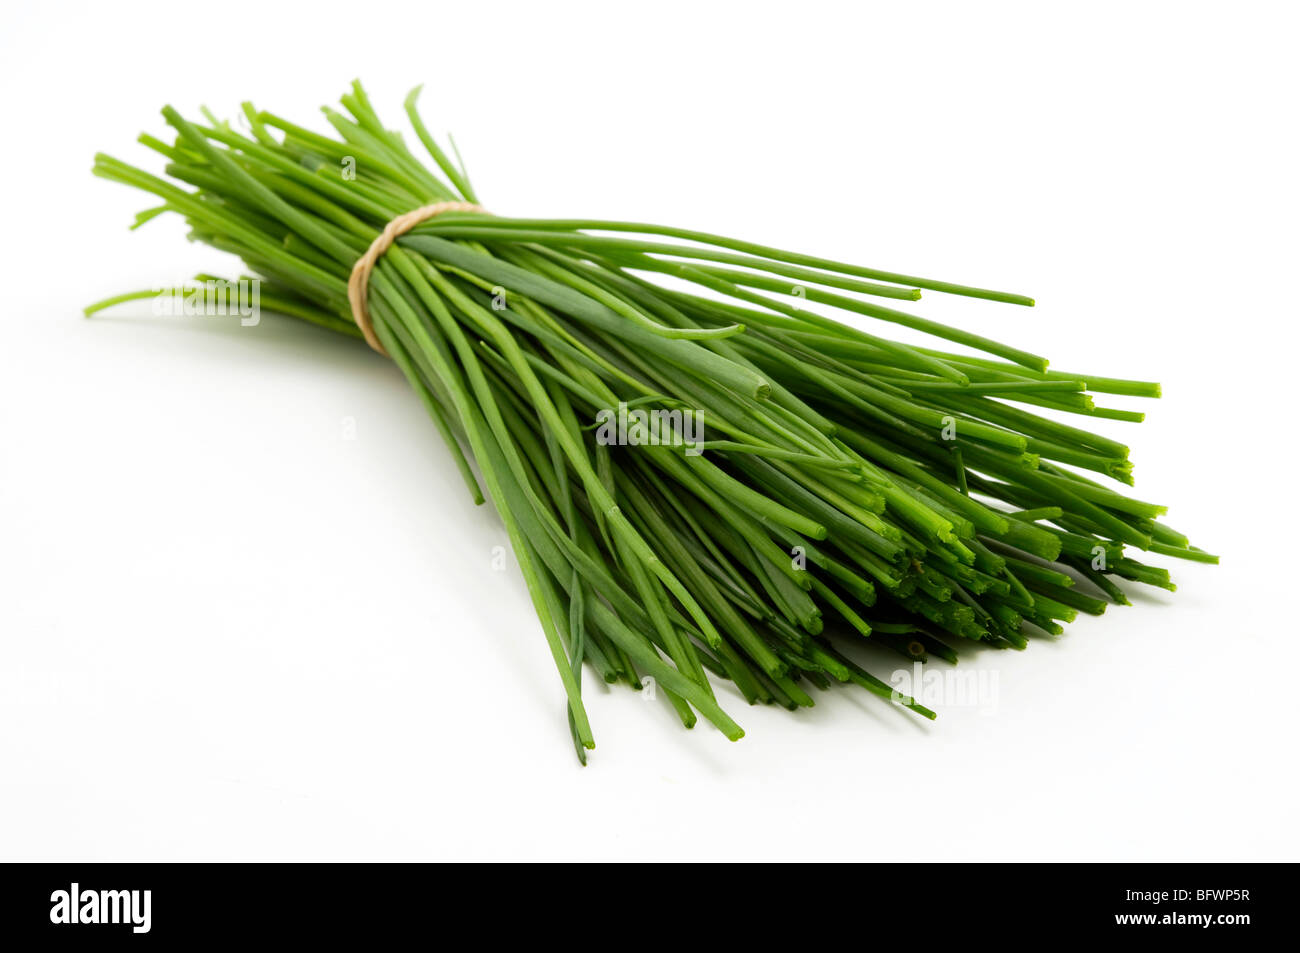 Bunch of chives on a white background - Stock Image